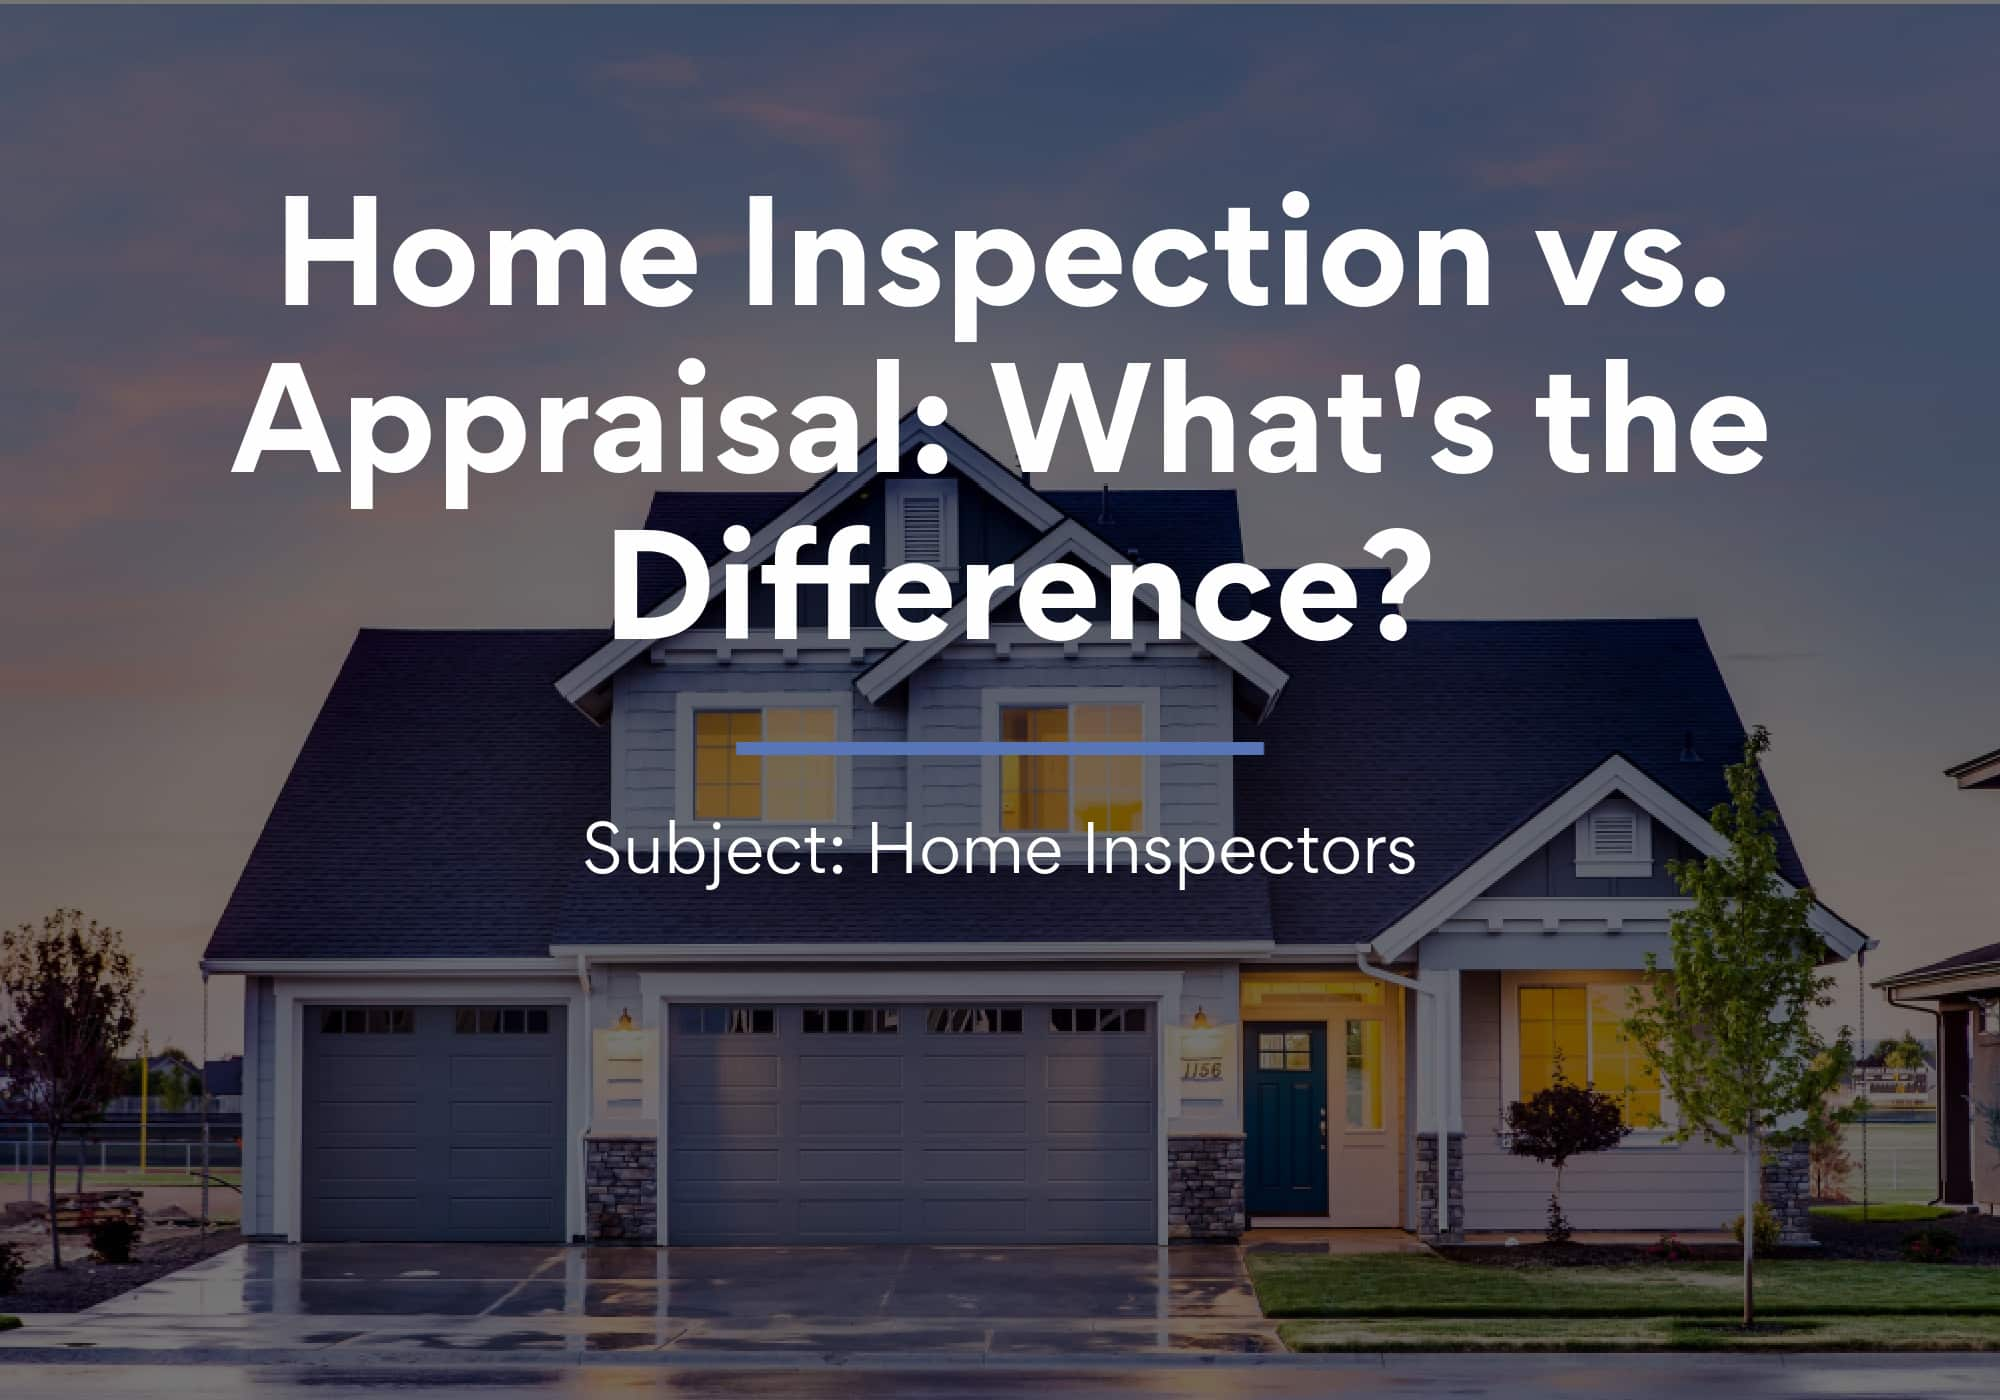 Home Inspection vs. Appraisal: What's the Difference?